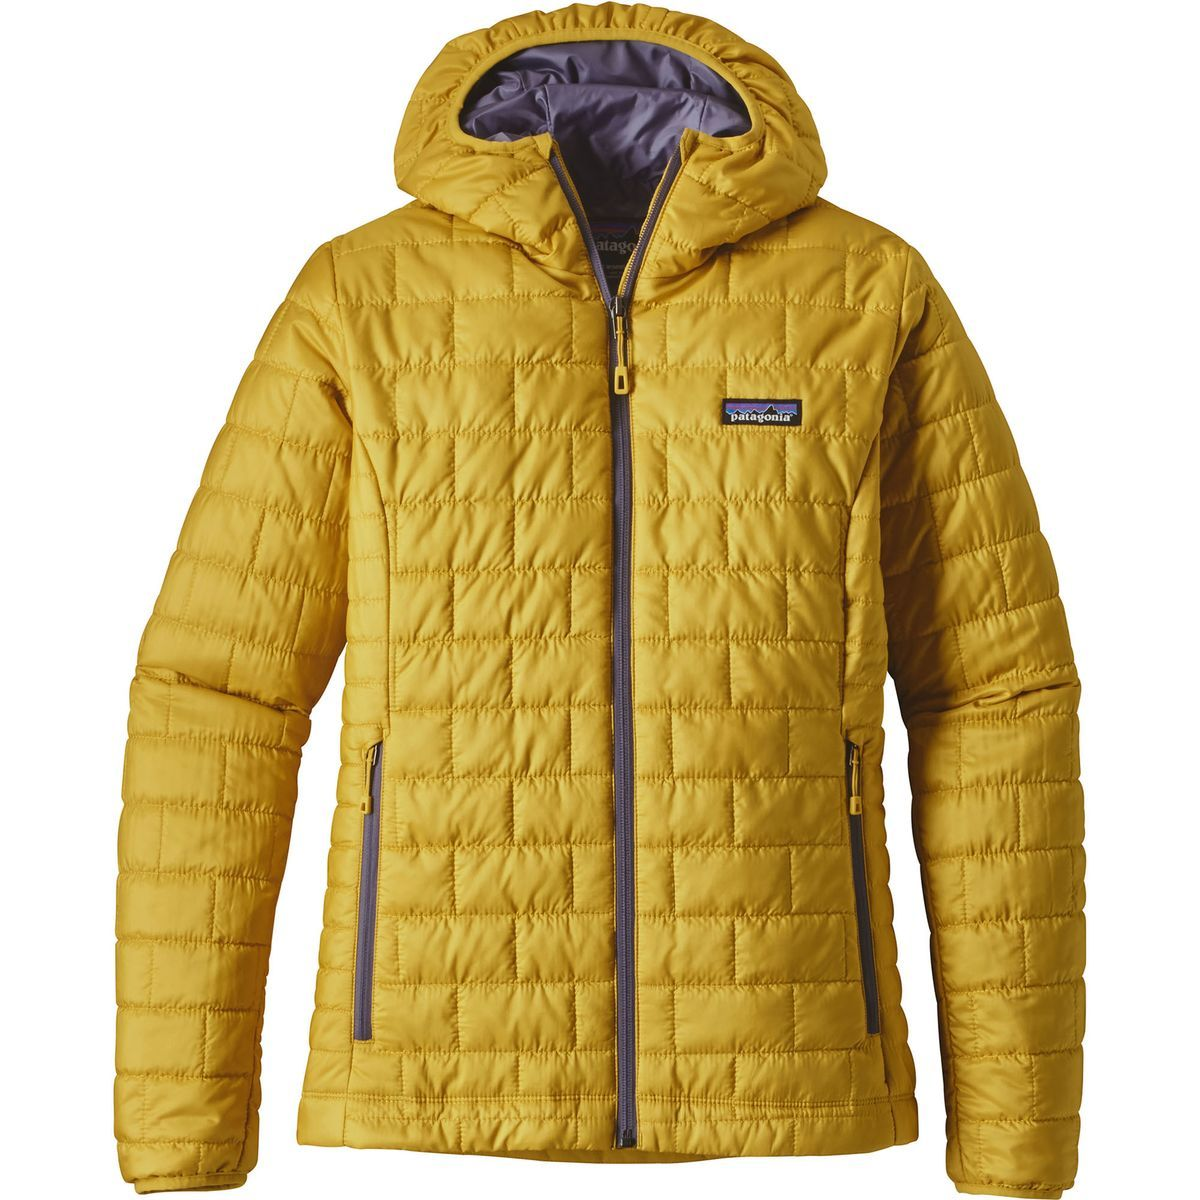 Patagonia Nano Puff Hooded Insulated Jacket Women's